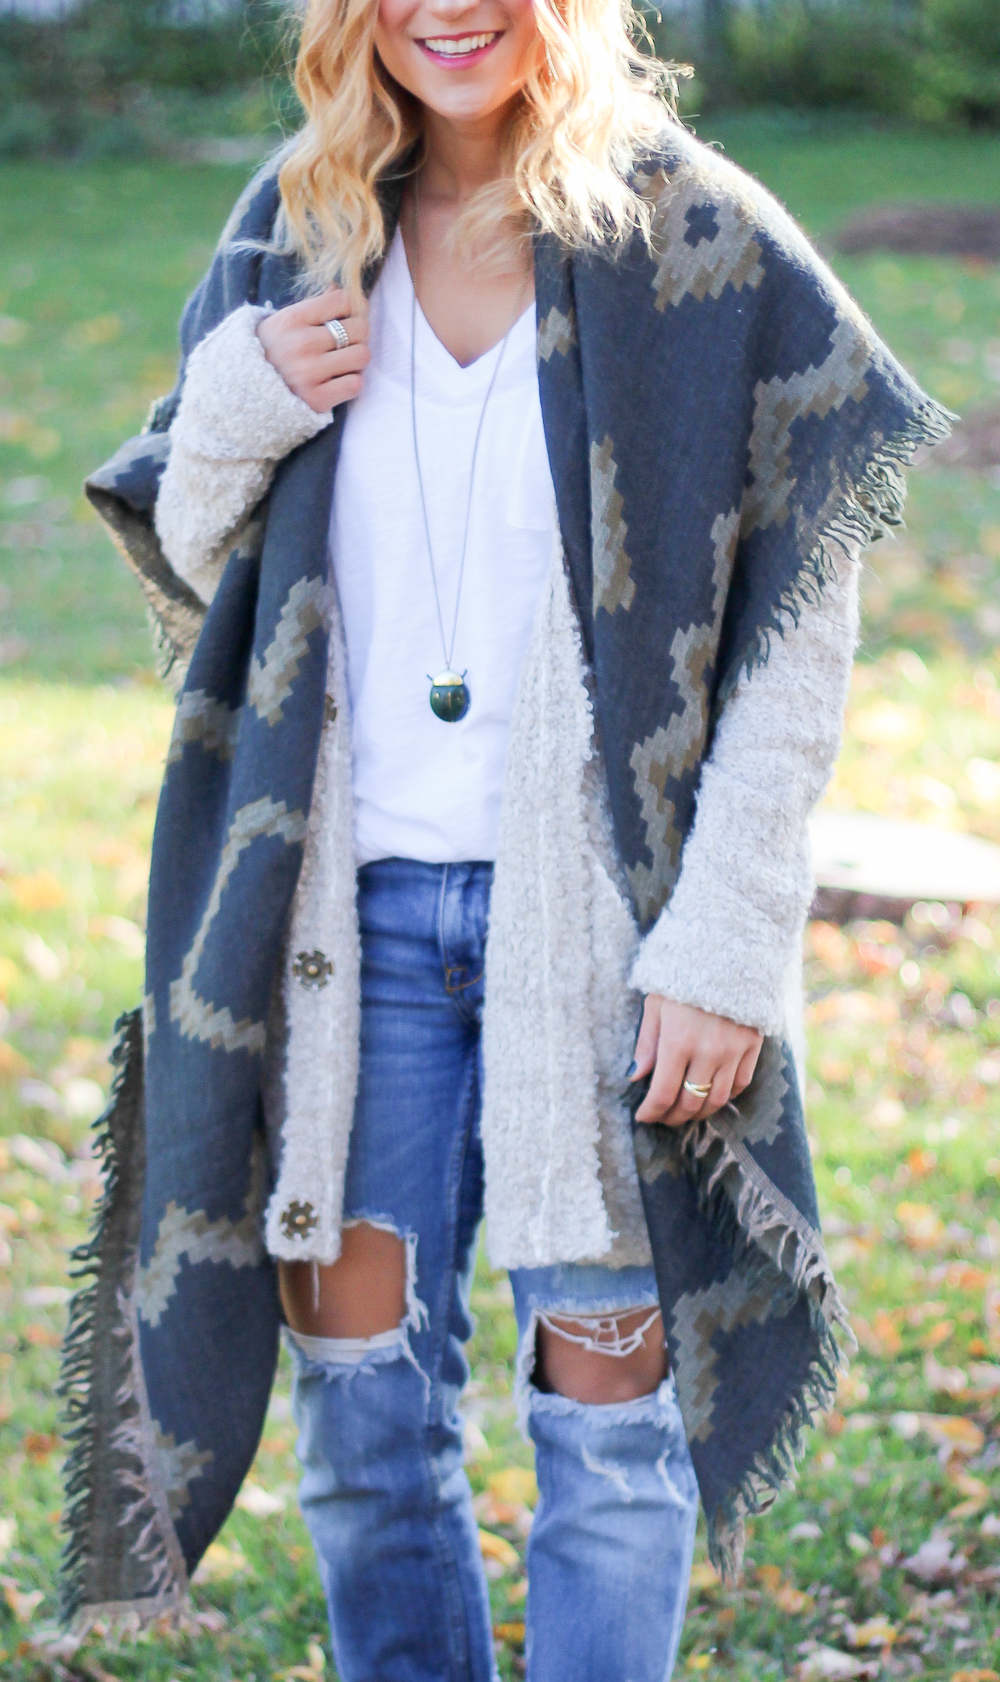 Free People cardigan, Aritzia blanket scarf, Zara ripped boyfriend jeans, as seen on Canadian fashion blogger, Jackie Goldhar